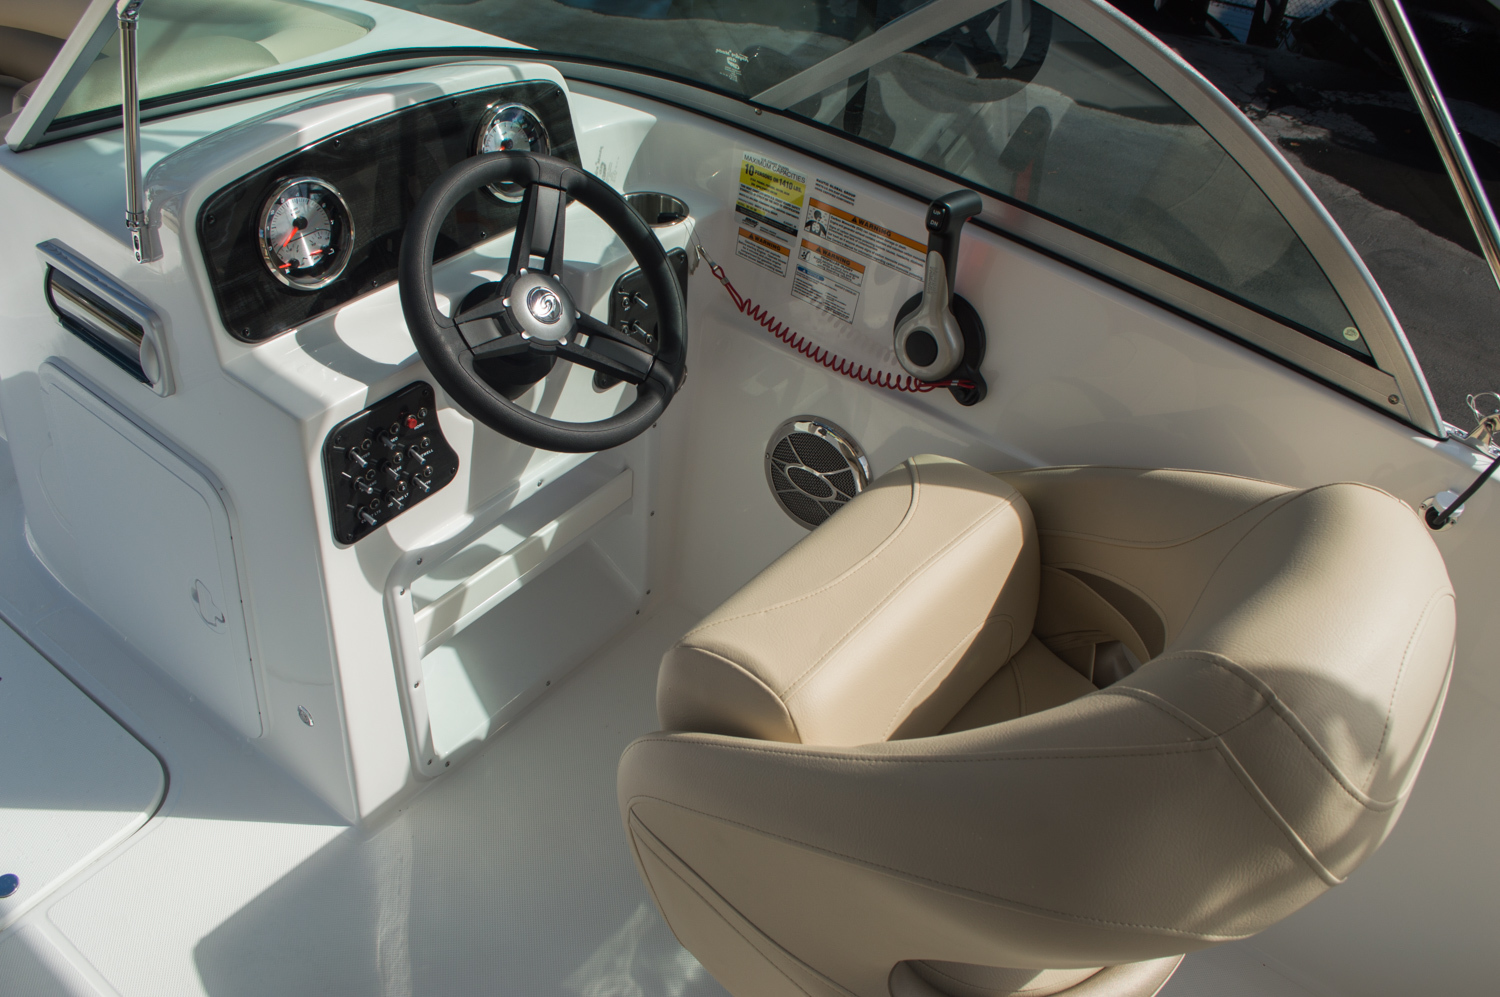 Thumbnail 31 for New 2016 Hurricane SunDeck SD 187 OB boat for sale in West Palm Beach, FL